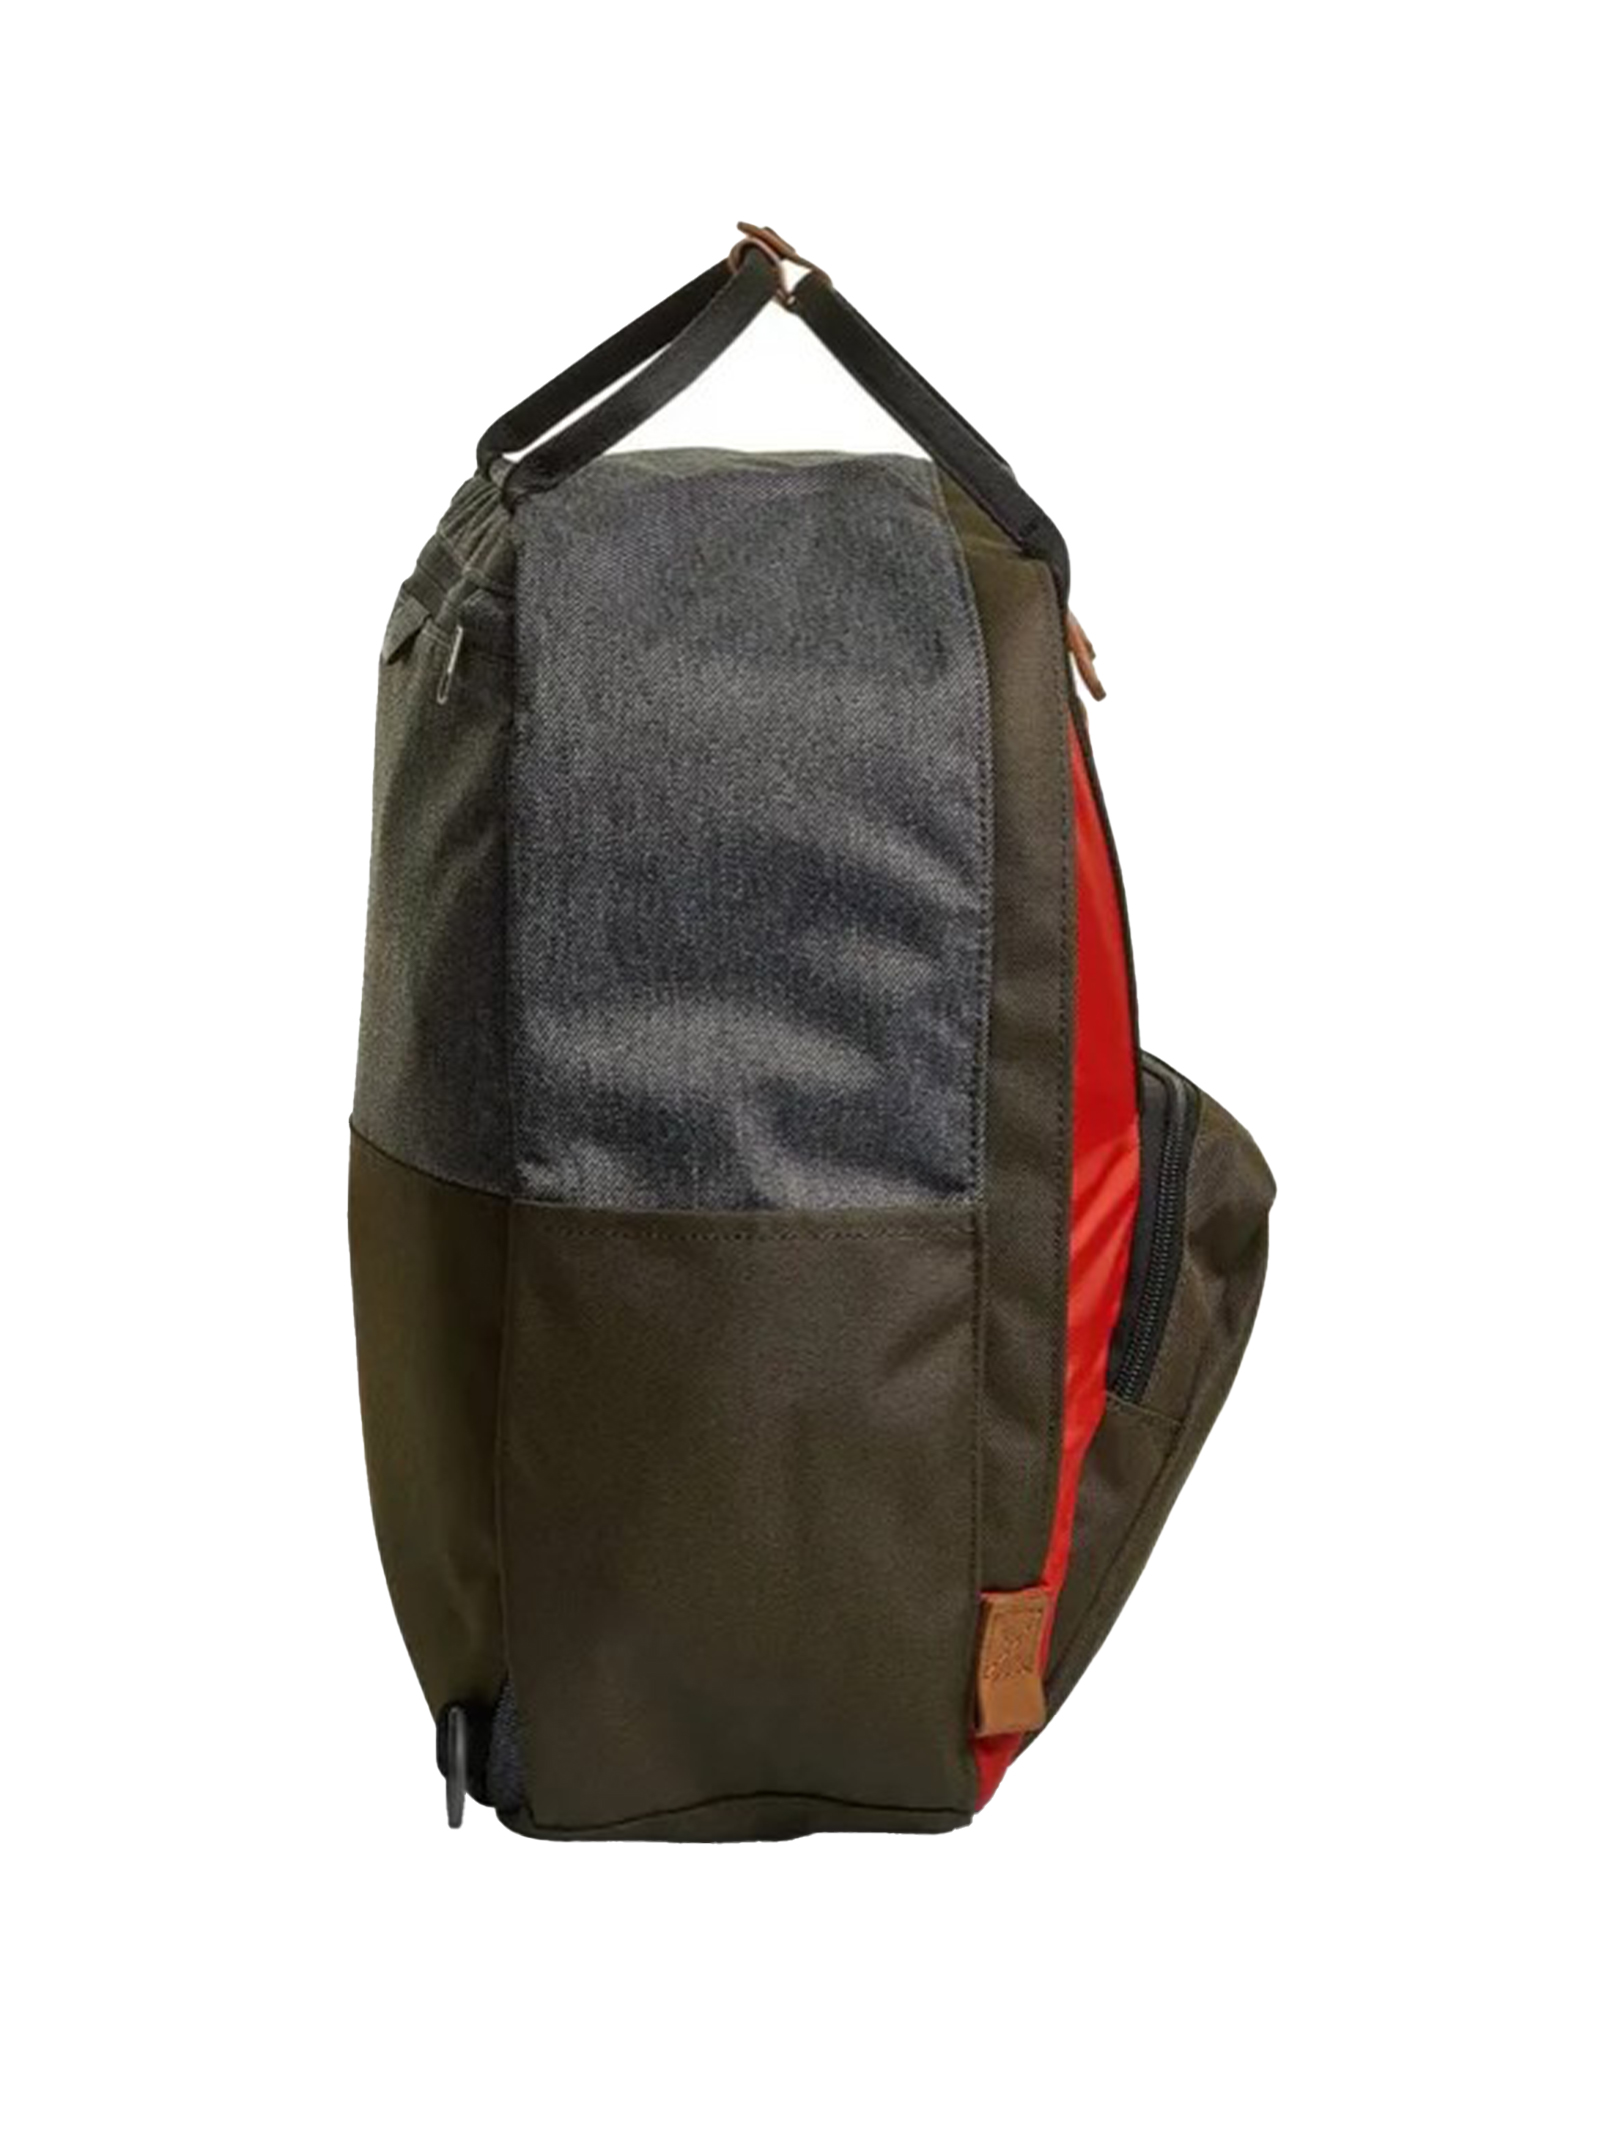 Unisex Icon Collection Shylla Red and Green Backpack with Padded Back and Shoulder Straps 206002114 Invicta   Bags and backpacks   SHYLLA PREMIUMBL4